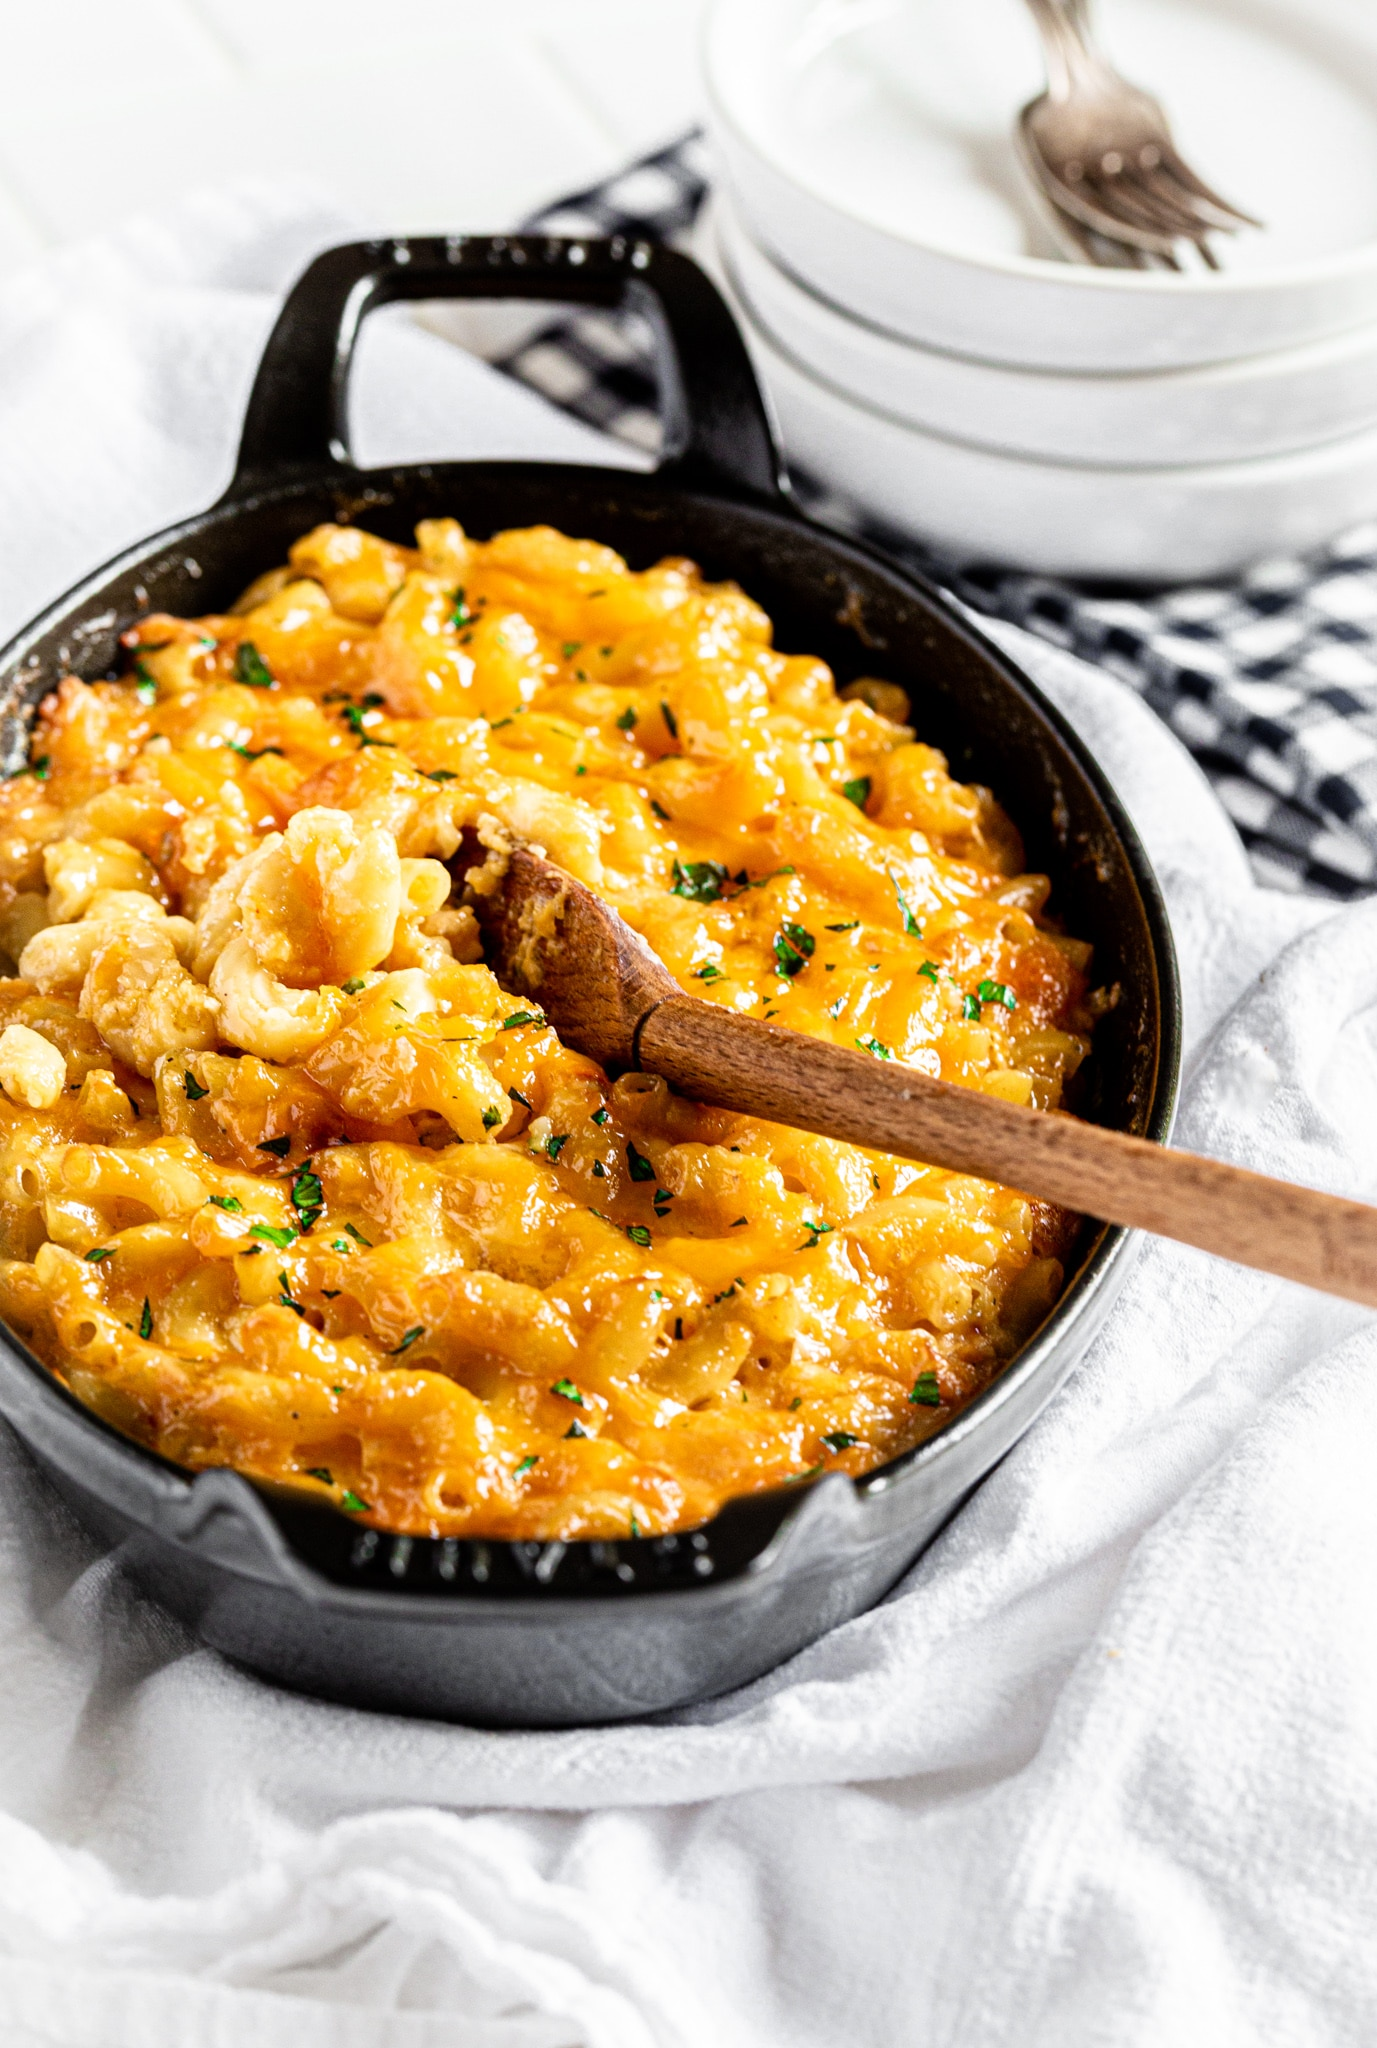 A graphite Staub gratin dish with baked macaroni and cheese on a white countertop.